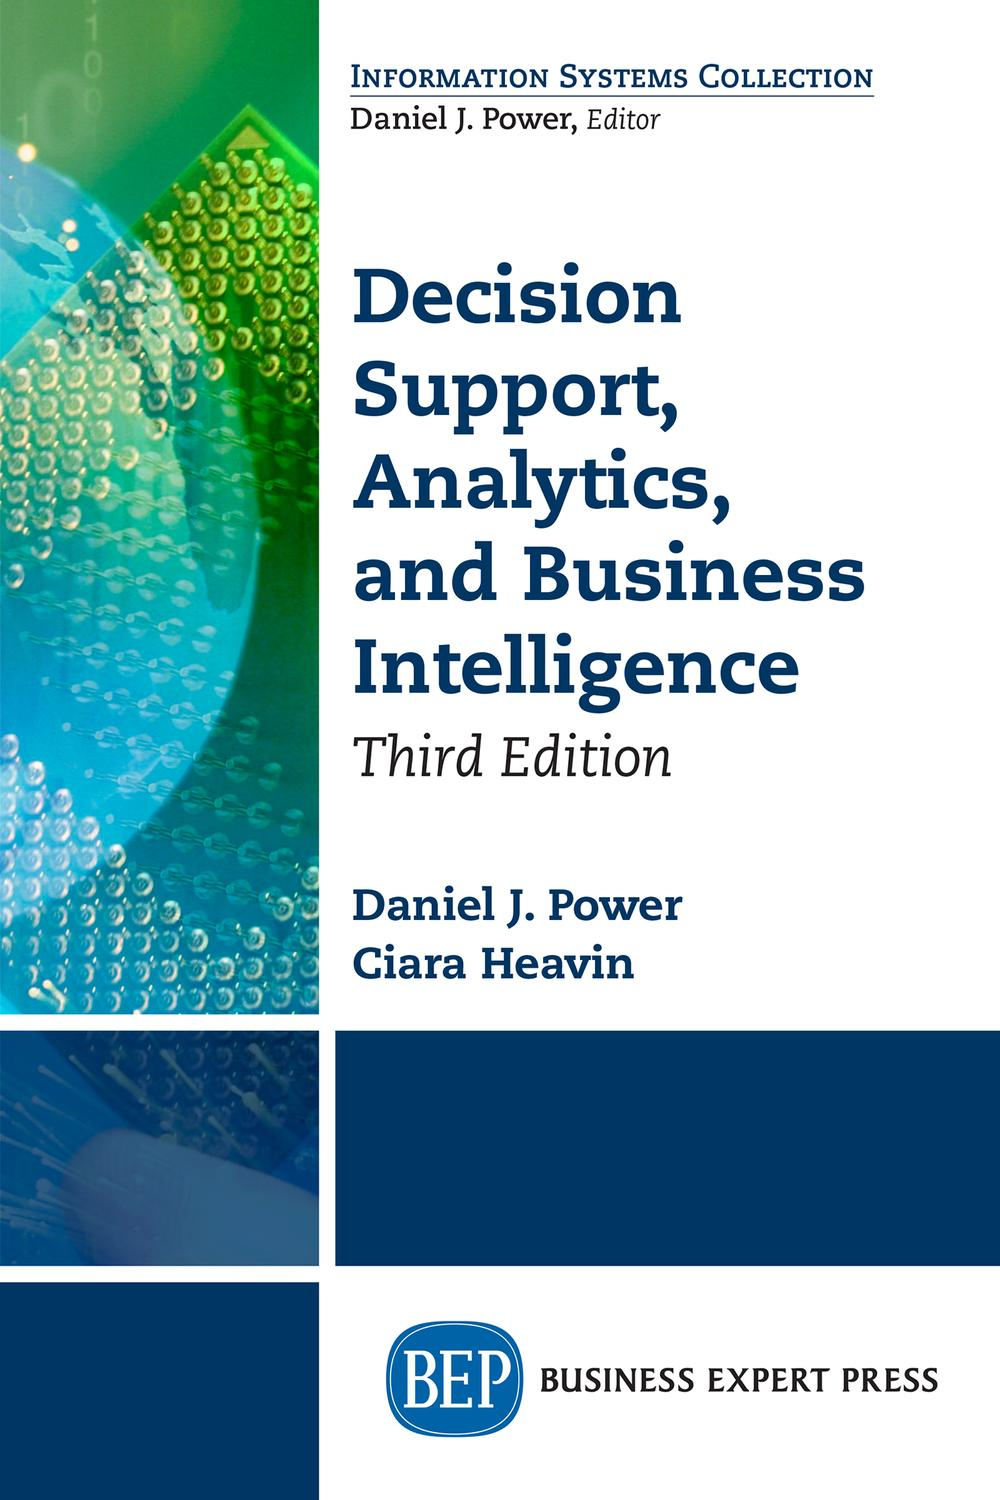 Decision Support Systems And Intelligent Systems Pdf